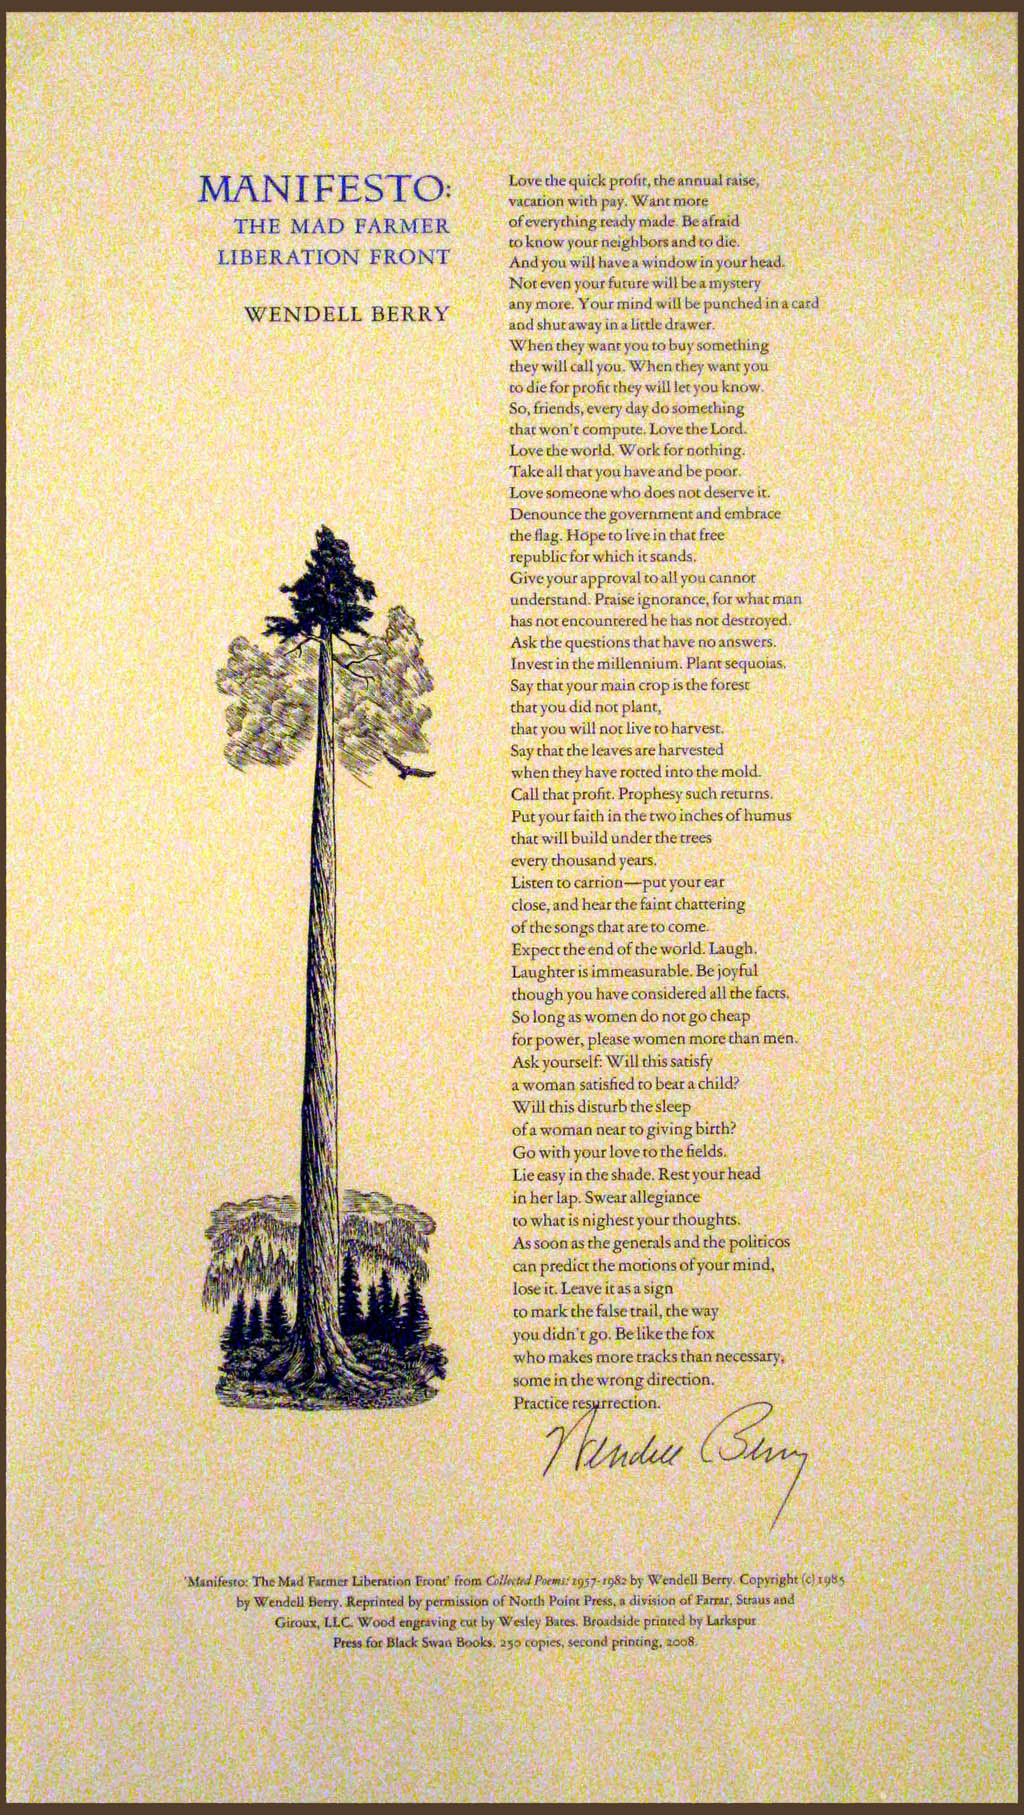 wendell berry broadside